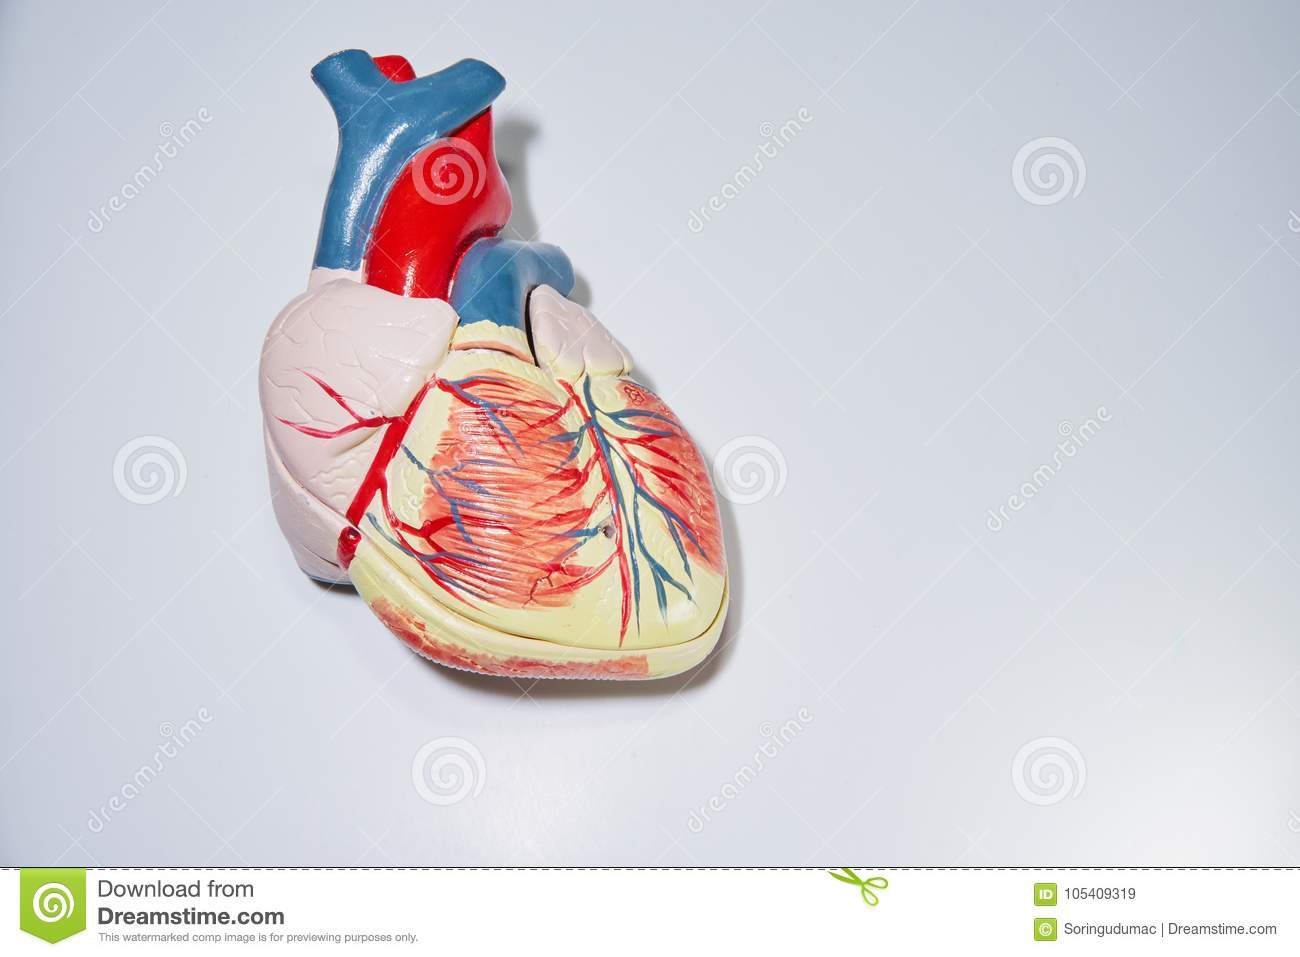 Anterior Face Of The Human Heart With Coronary Arteries Stock Image ...